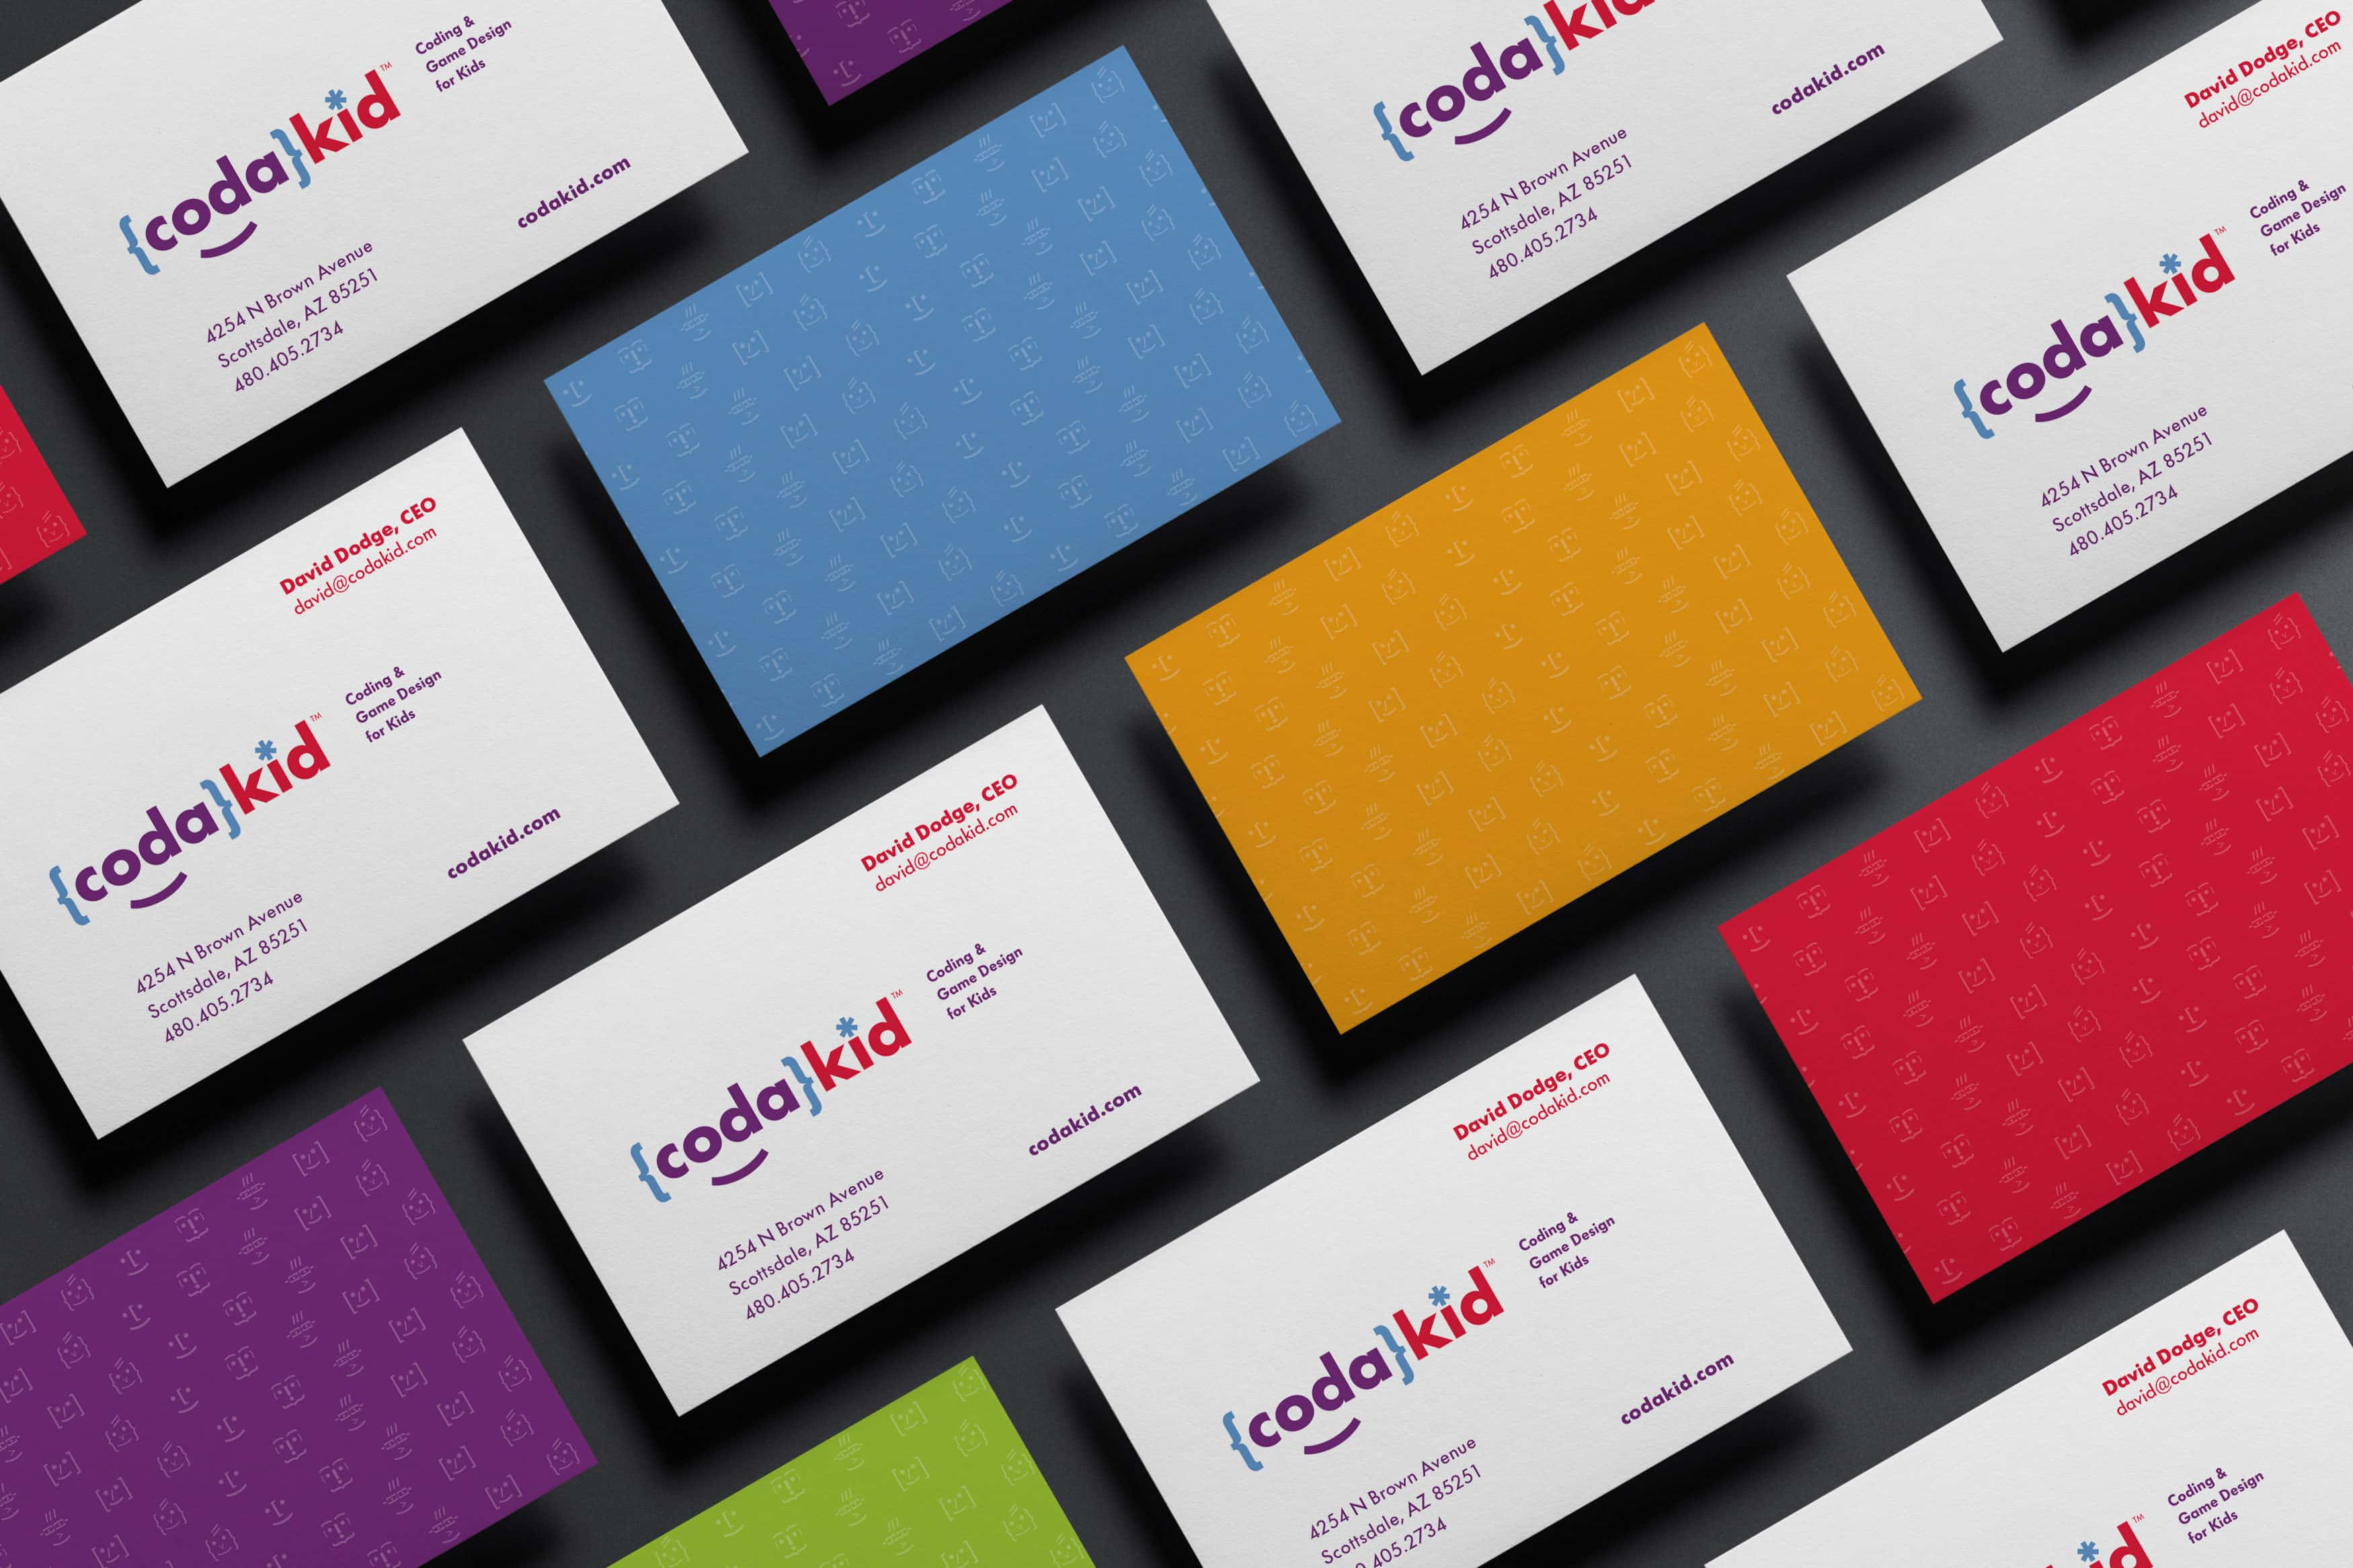 CodaKid Rebrand Application Business Cards